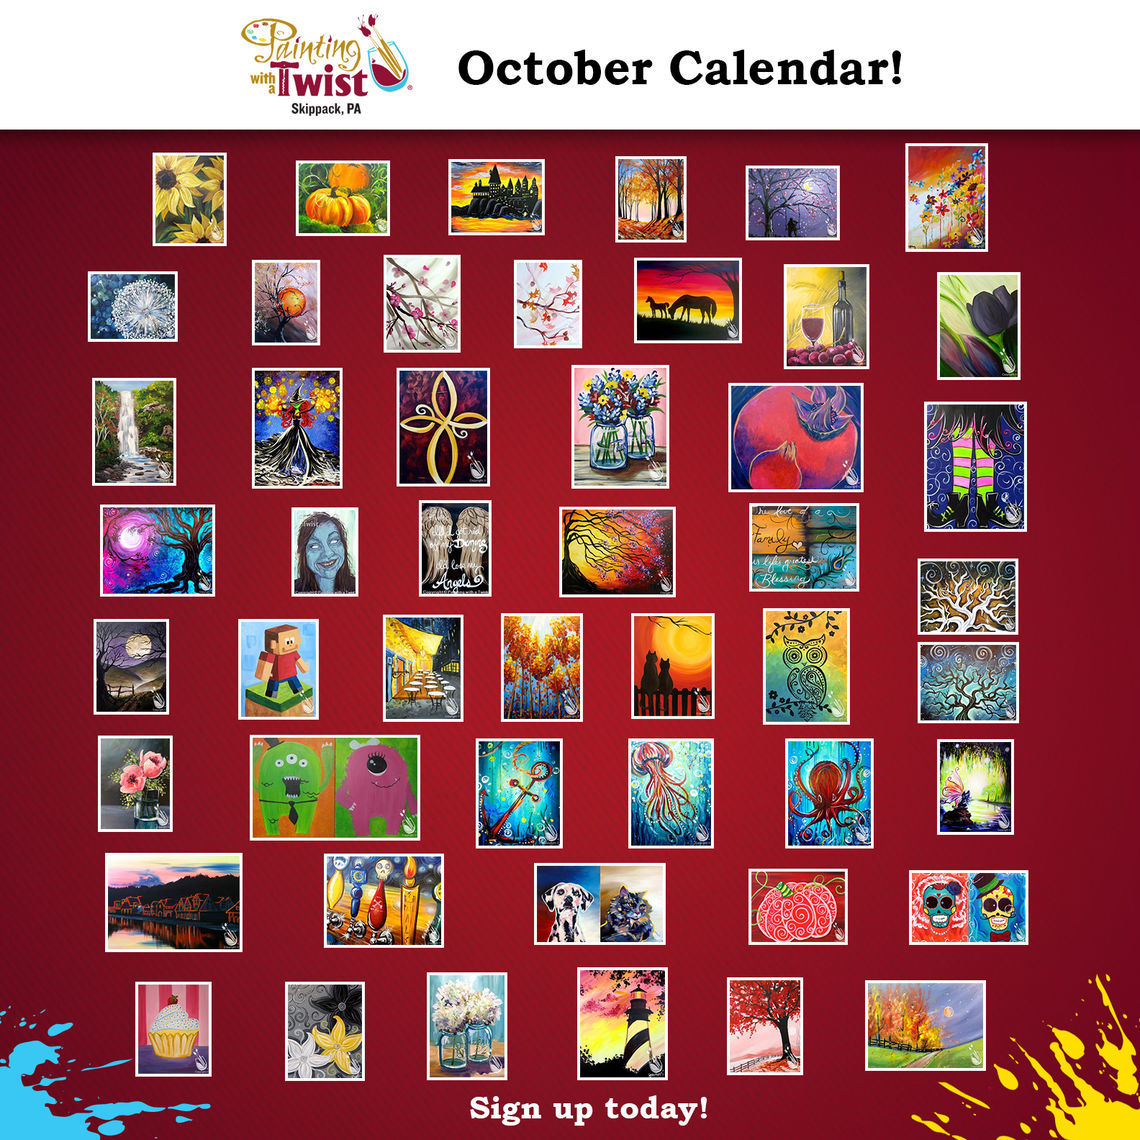 Phillyfunguide – Painting With A Twist Skippack, Pa within Painting With A Twist Calendar